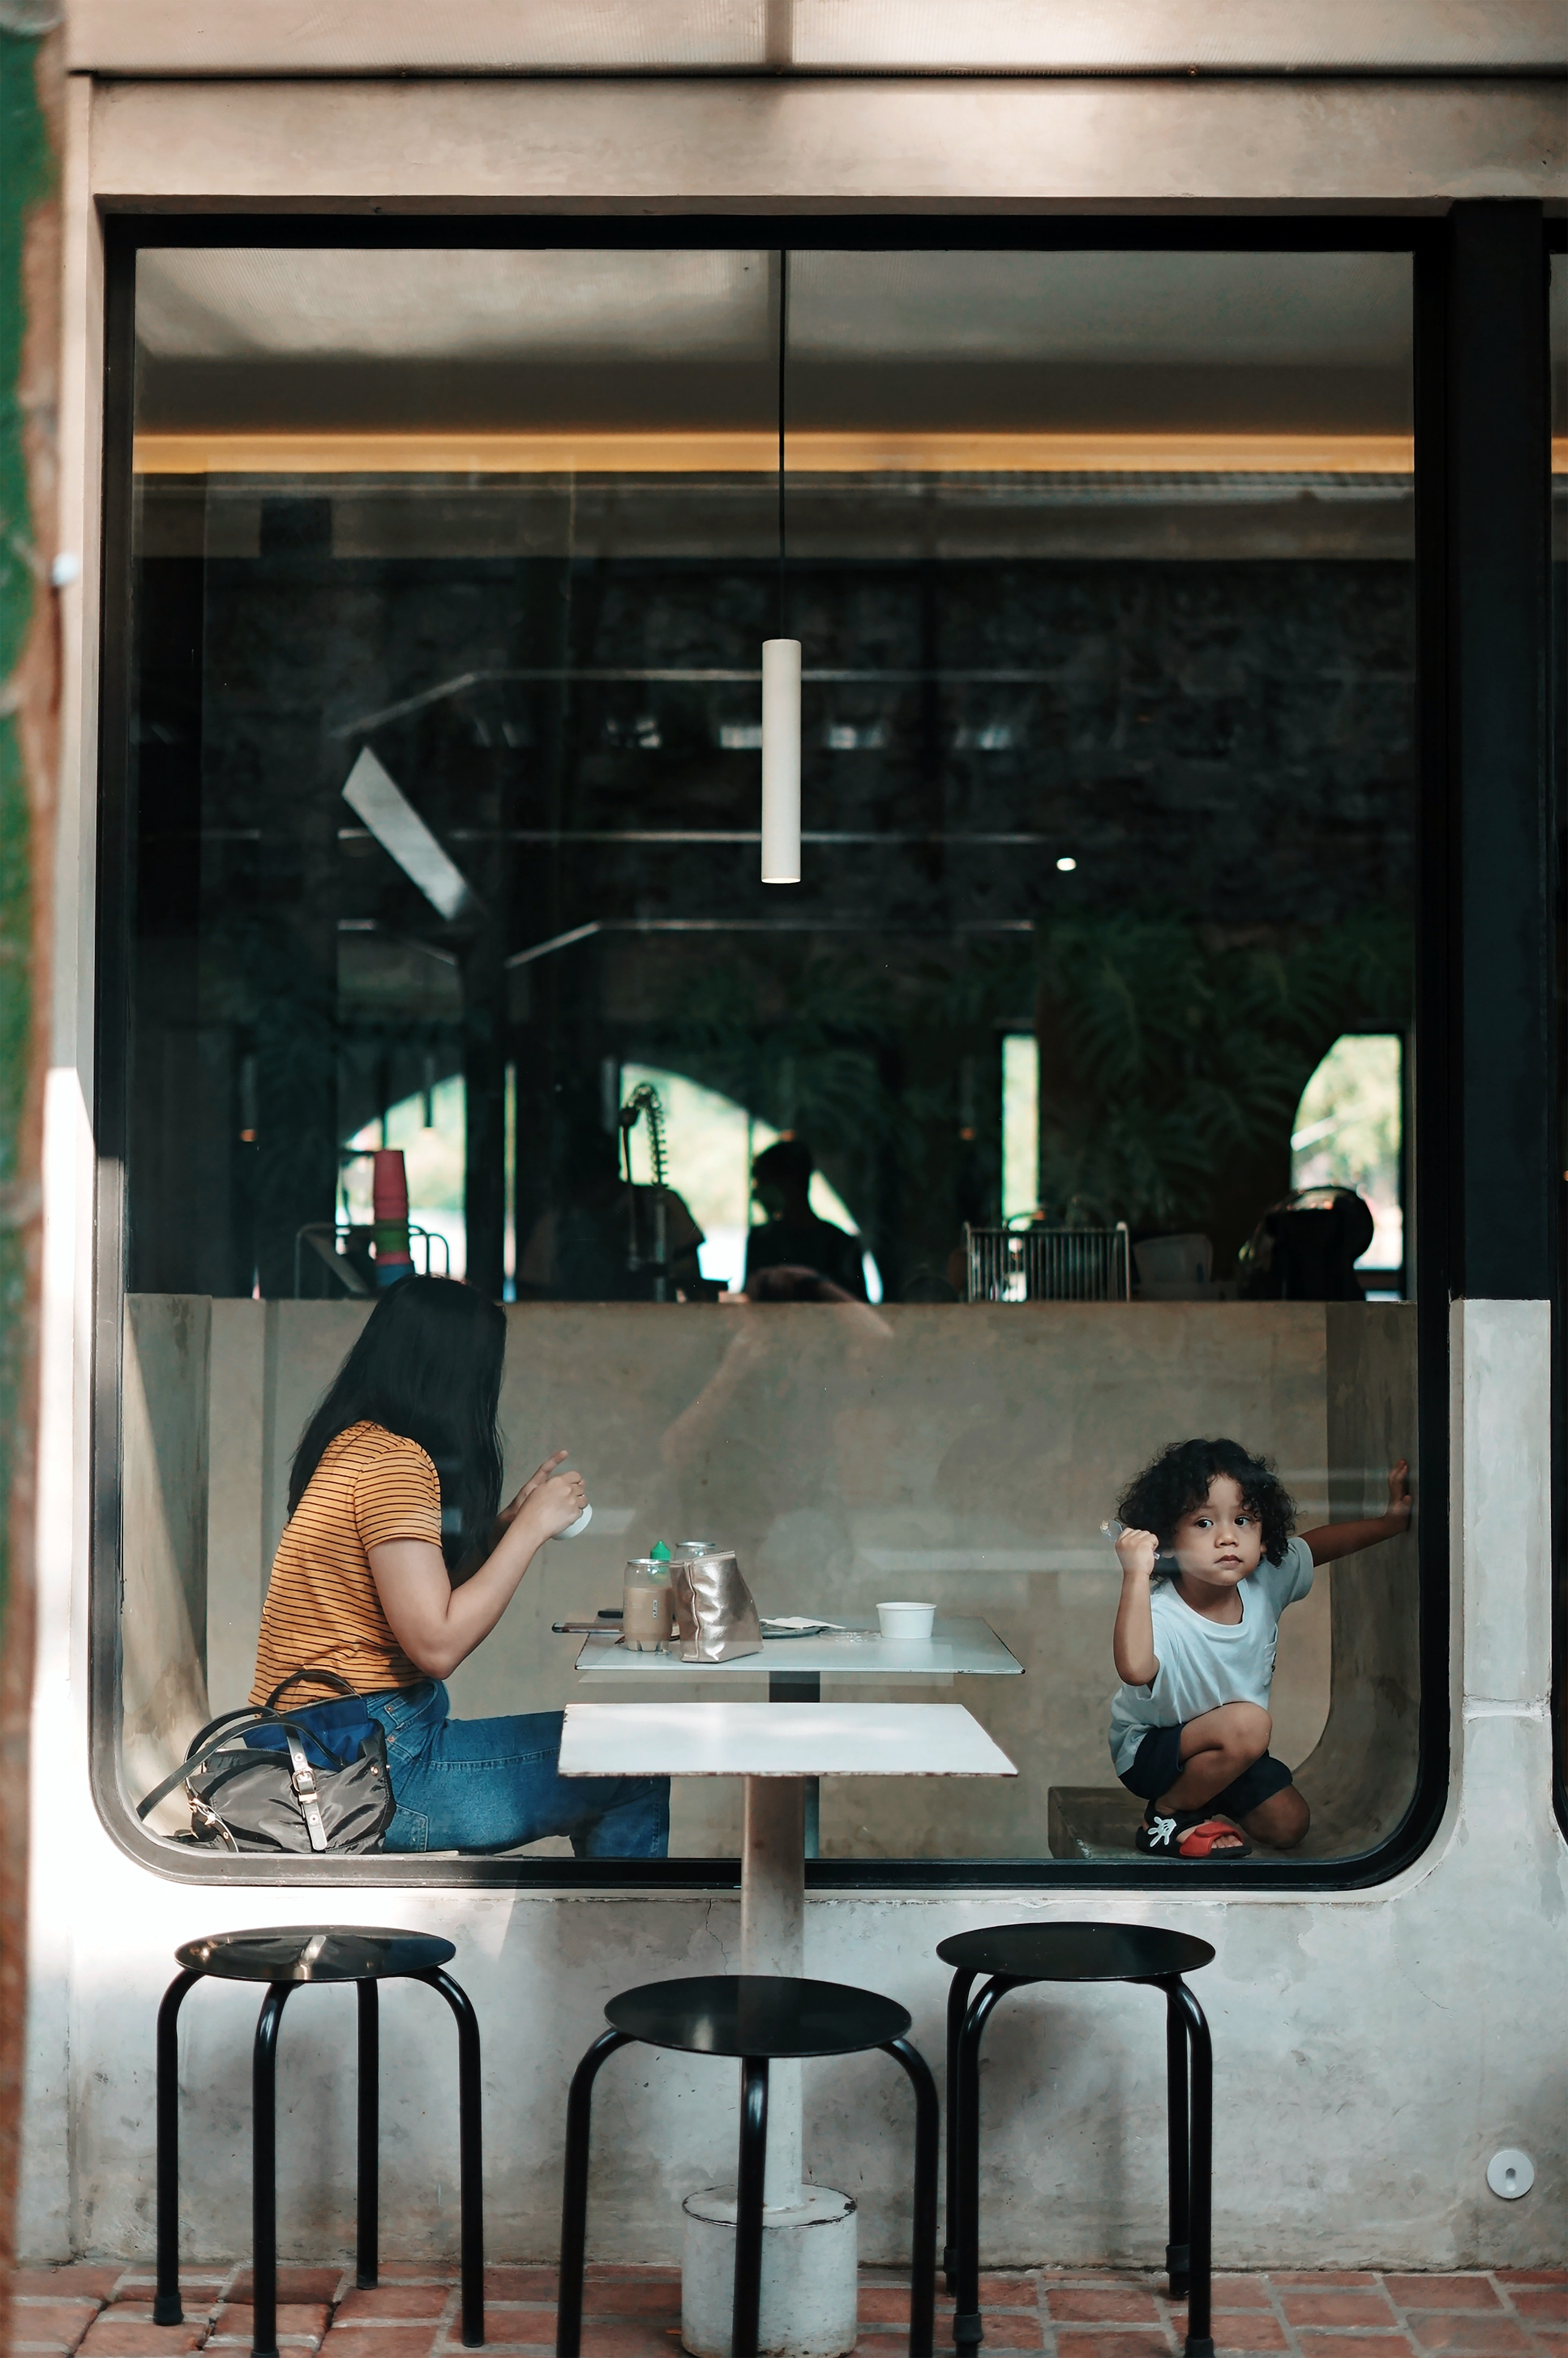 Woman dining with a kid | Photo: Unsplash